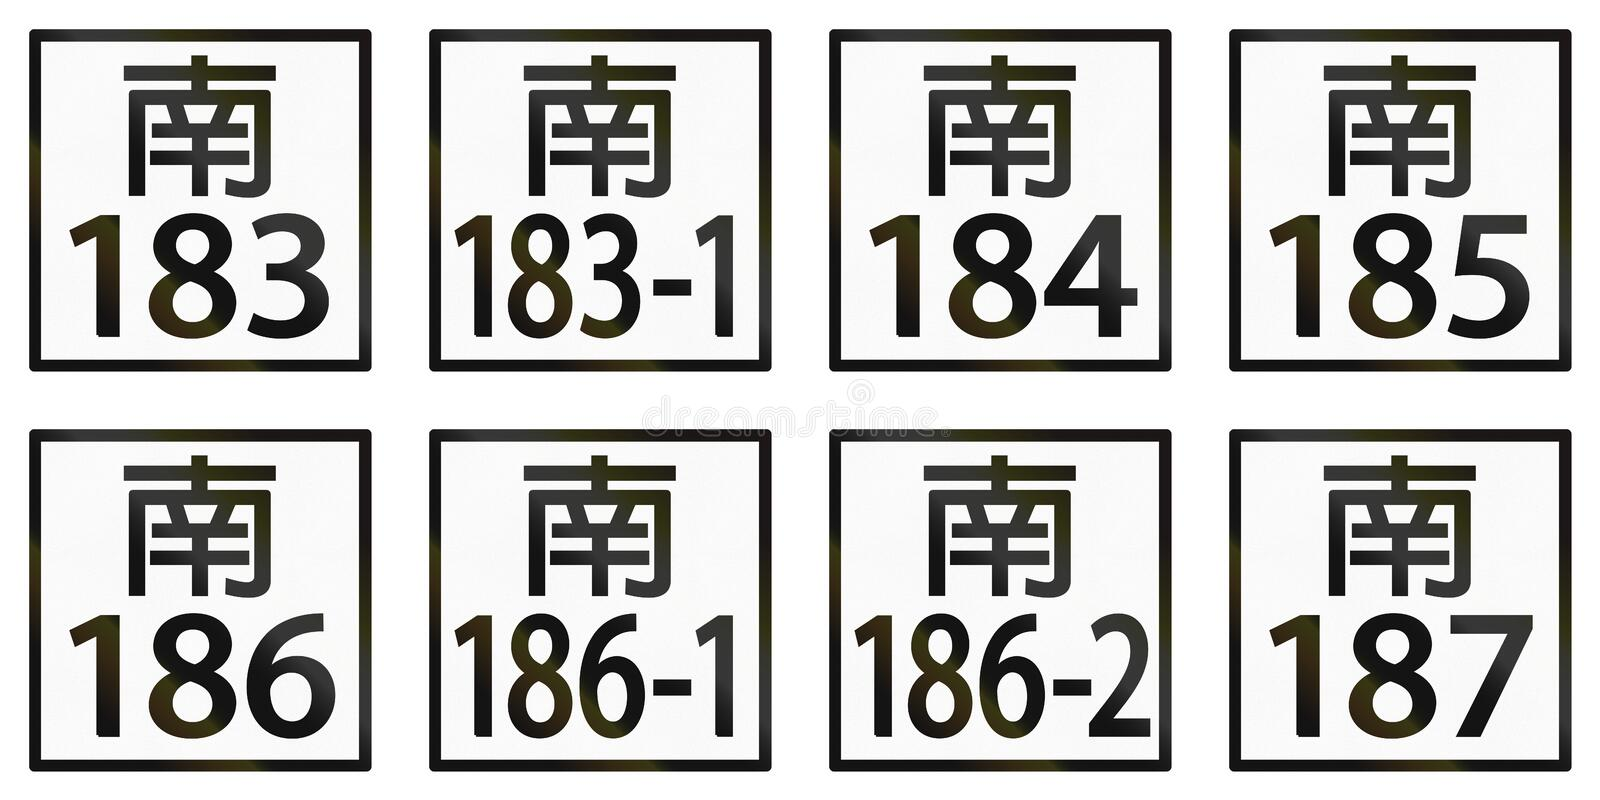 Collection of local township highway signs in Taiwan stock photography